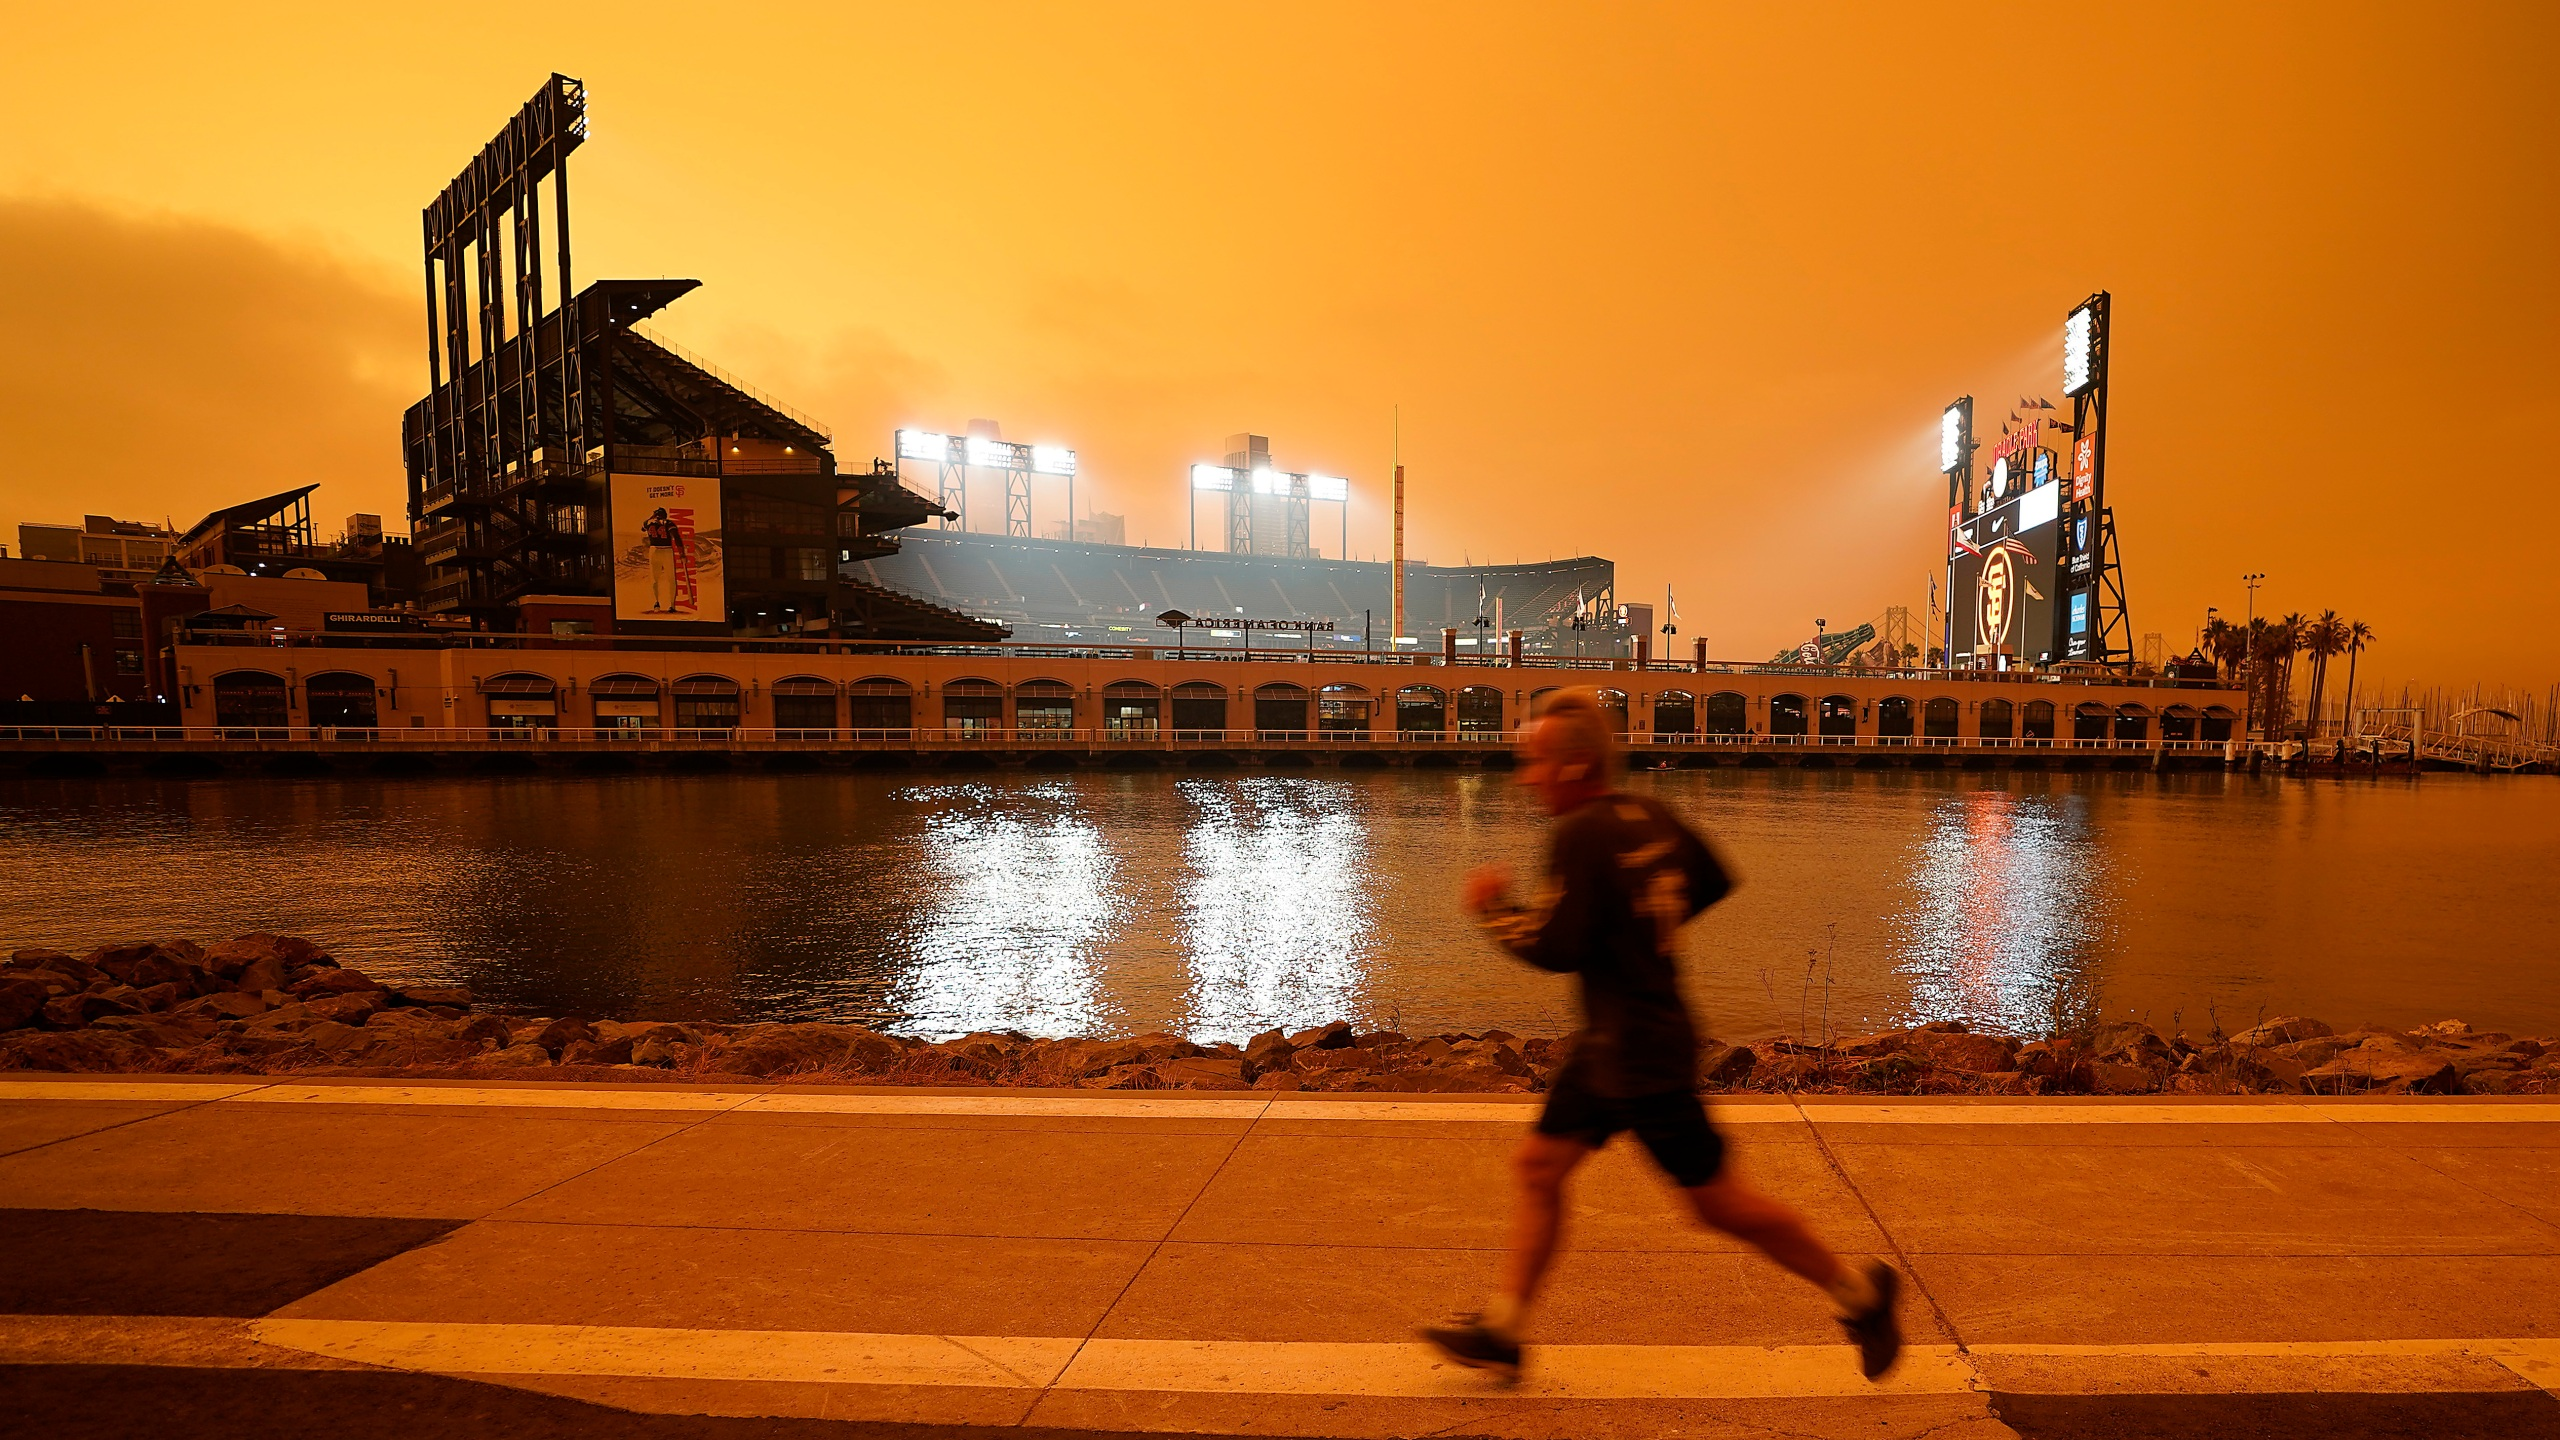 In this Wednesday, Sept. 9, 2020 file photo, a jogger runs along McCovey Cove outside Oracle Park in San Francisco, under darkened skies from wildfire smoke. Health problems tied to climate change are all getting worse, according to two reports published in the medical journal Lancet on Wednesday, Oct. 20, 2021. An unprecedented Pacific Northwest and Canadian heat wave hit this summer, which a previous study showed couldn't have happened without human-caused climate change. (AP Photo/Tony Avelar)